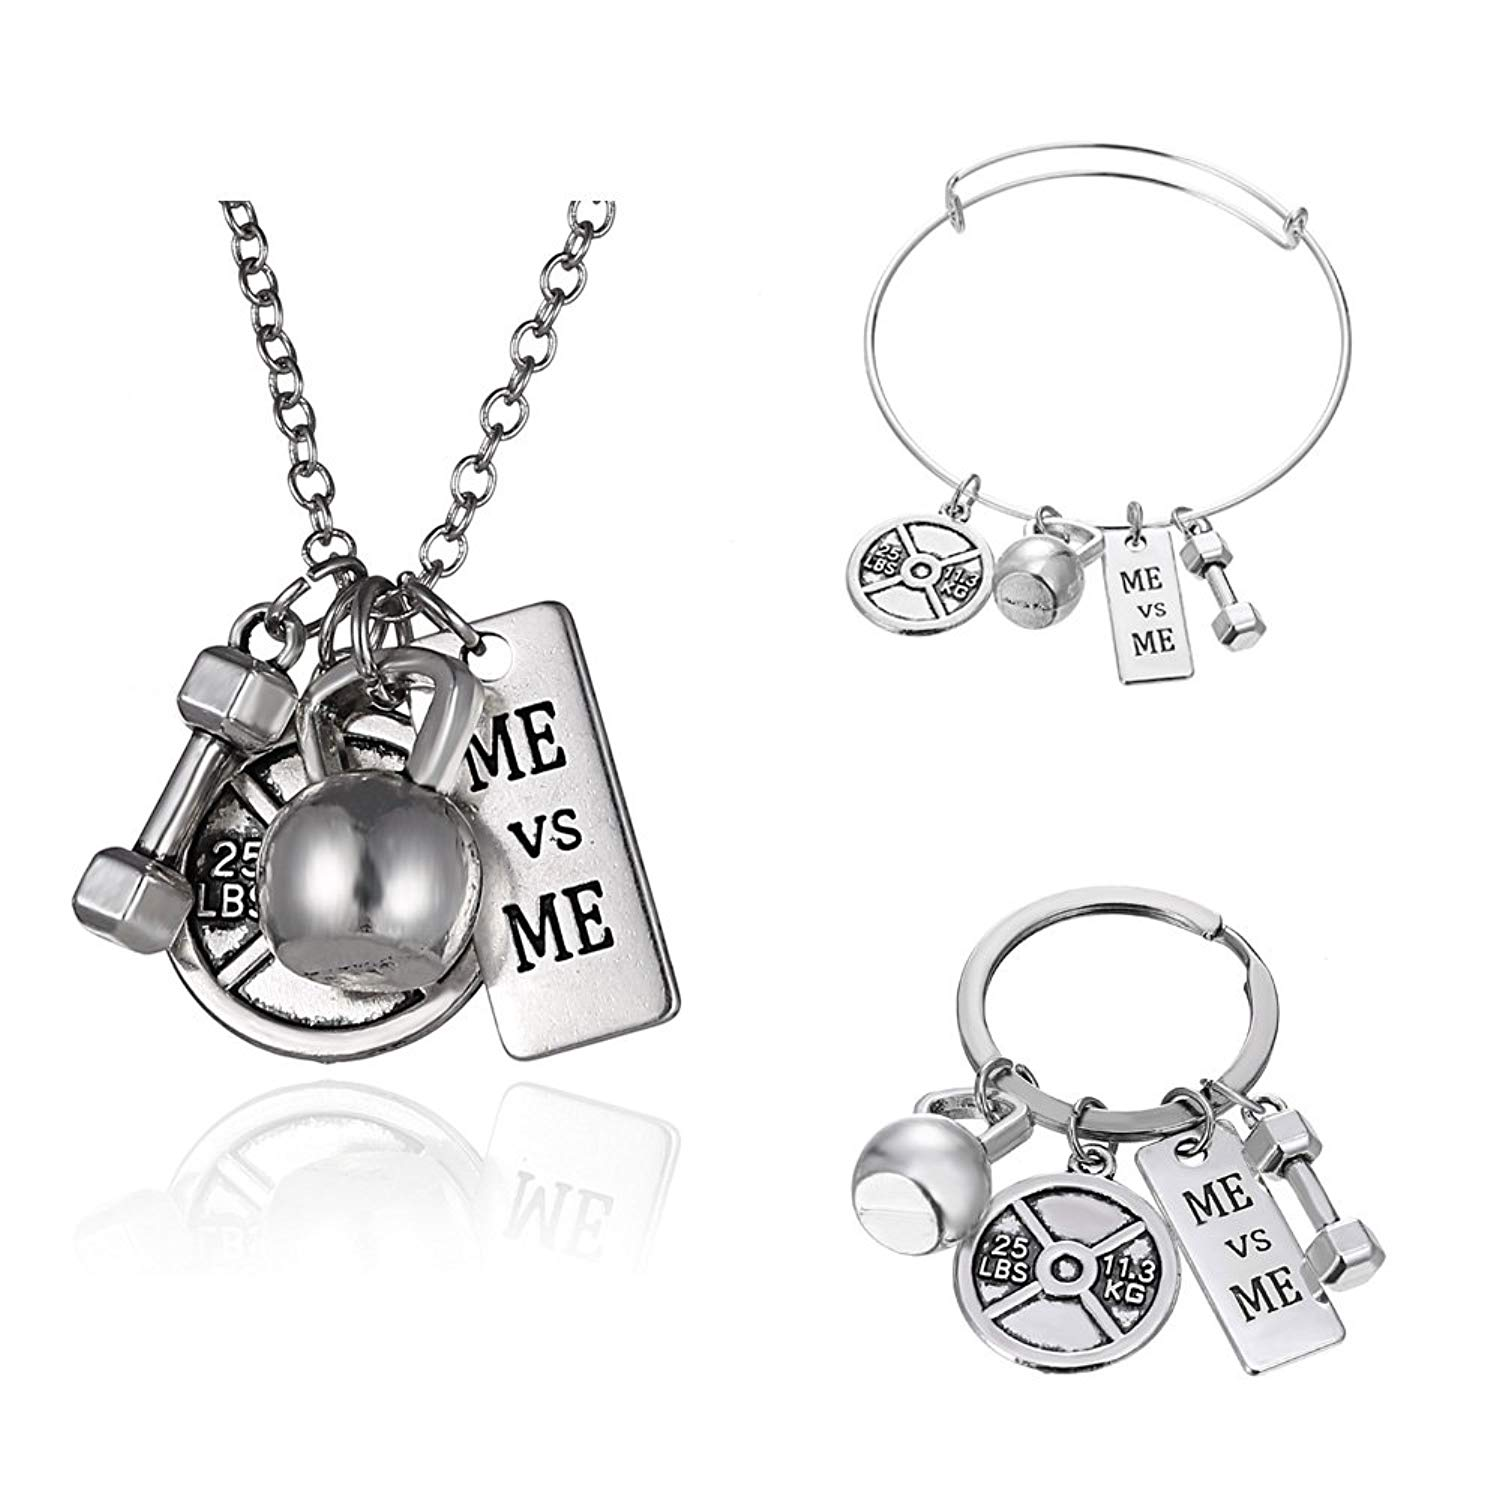 Gmai ME VS ME Workout Exercise Weight Lifting Barbell Kettlebell Fitness Silver Fitness Gym Barbell Plate Dumbbell Weight Jewelry Set Necklace Keyring bracelet